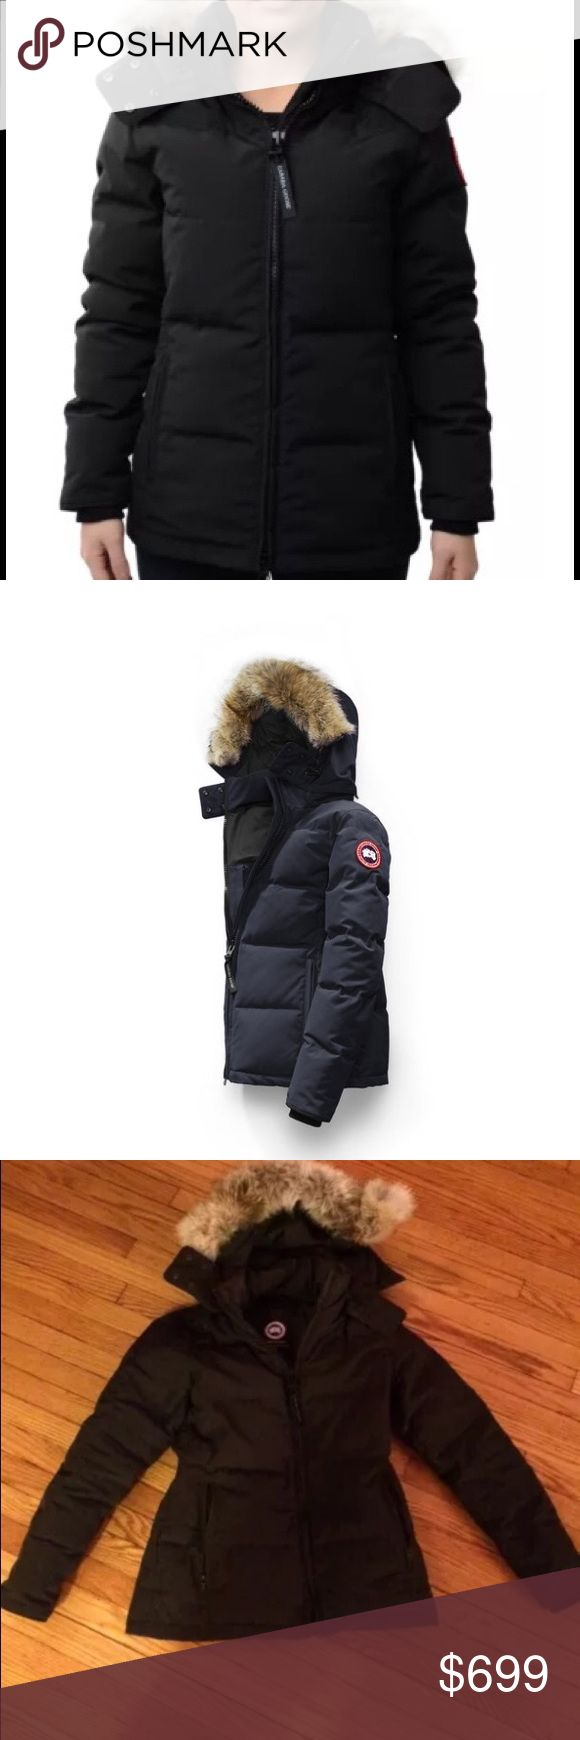 Canada Goose size S Chelsea Parka Like new parka- owned for a little over a year. Was a gift from my husband (but I decided I need a larger size). Absolutely gorgeous coat and life changer if you live in a cold climate!!! Canada Goose Jackets & Coats